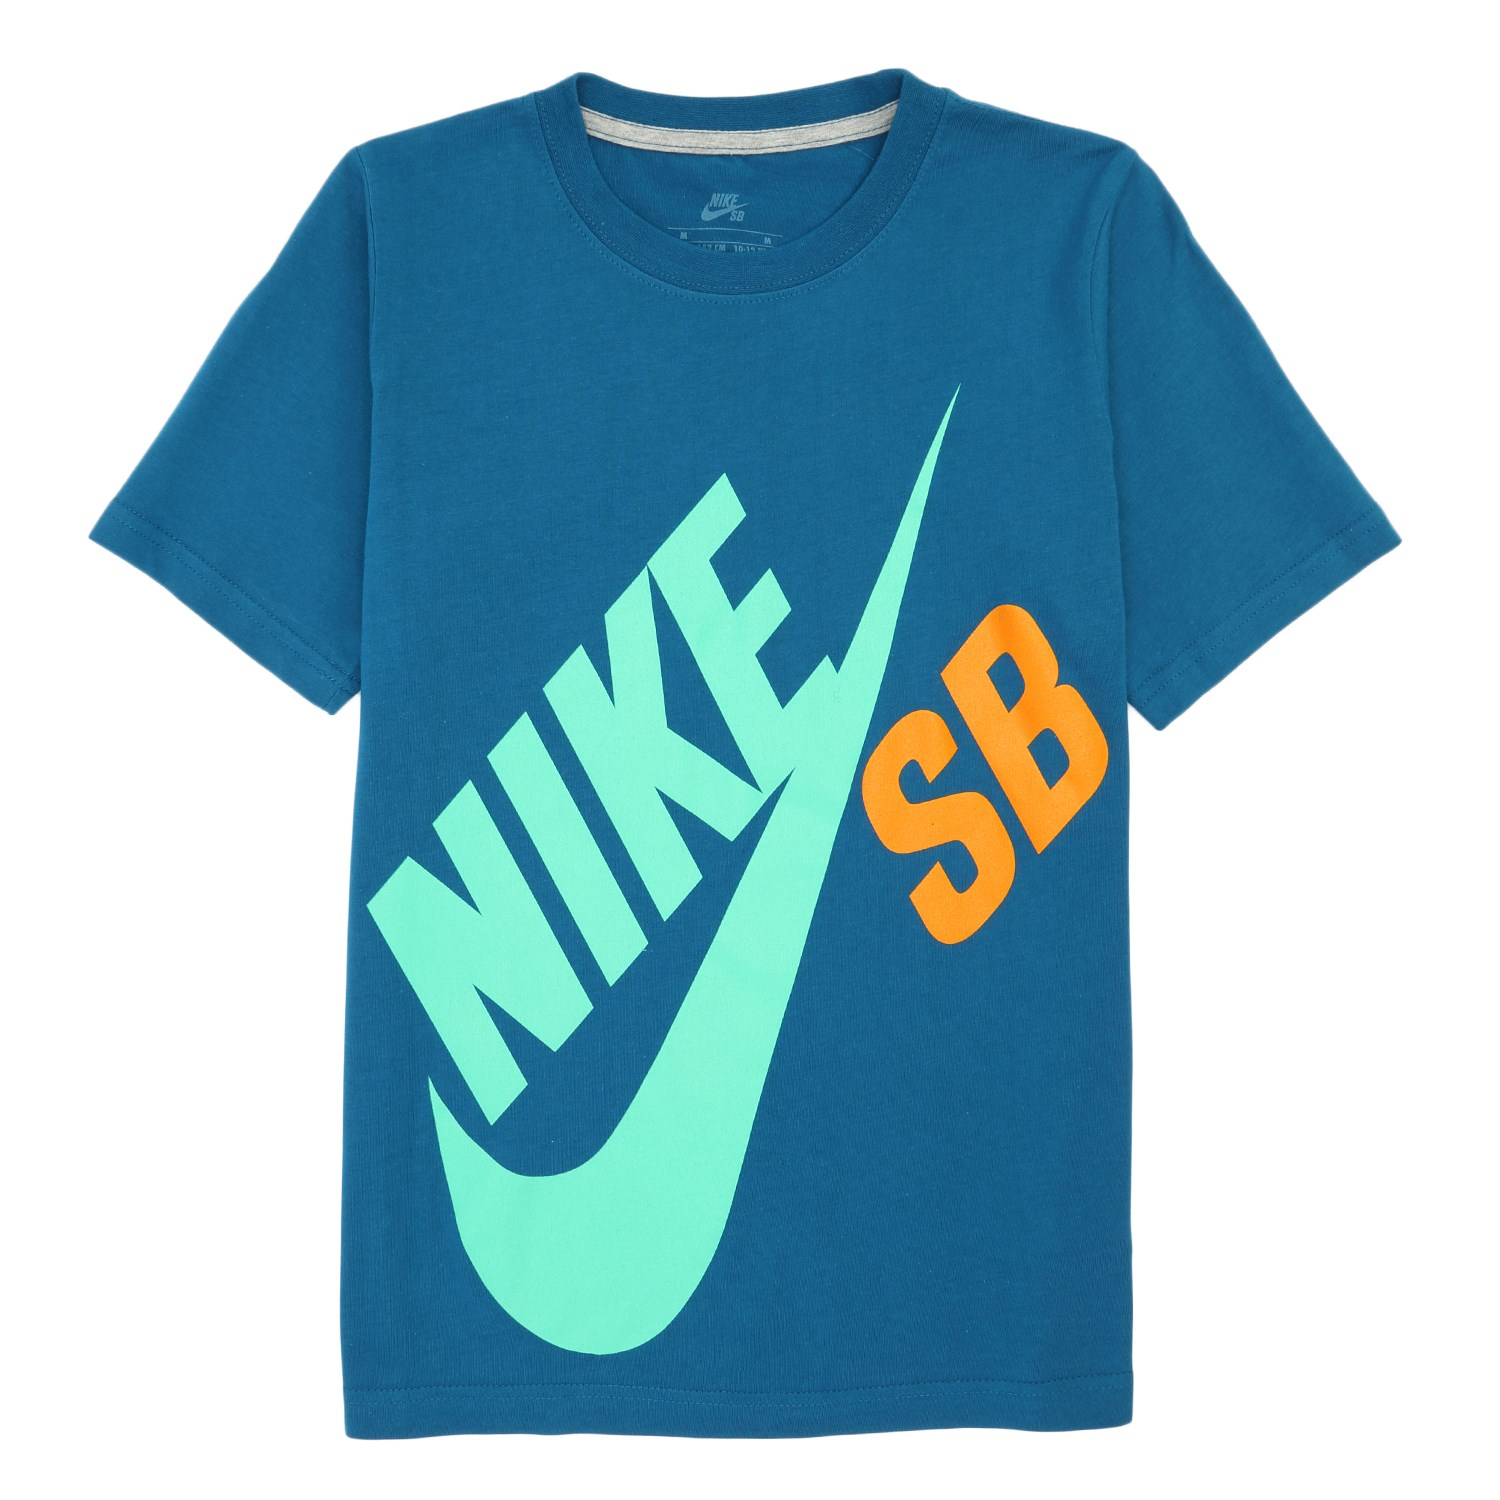 Efscmvpb Sale nike clothing boys